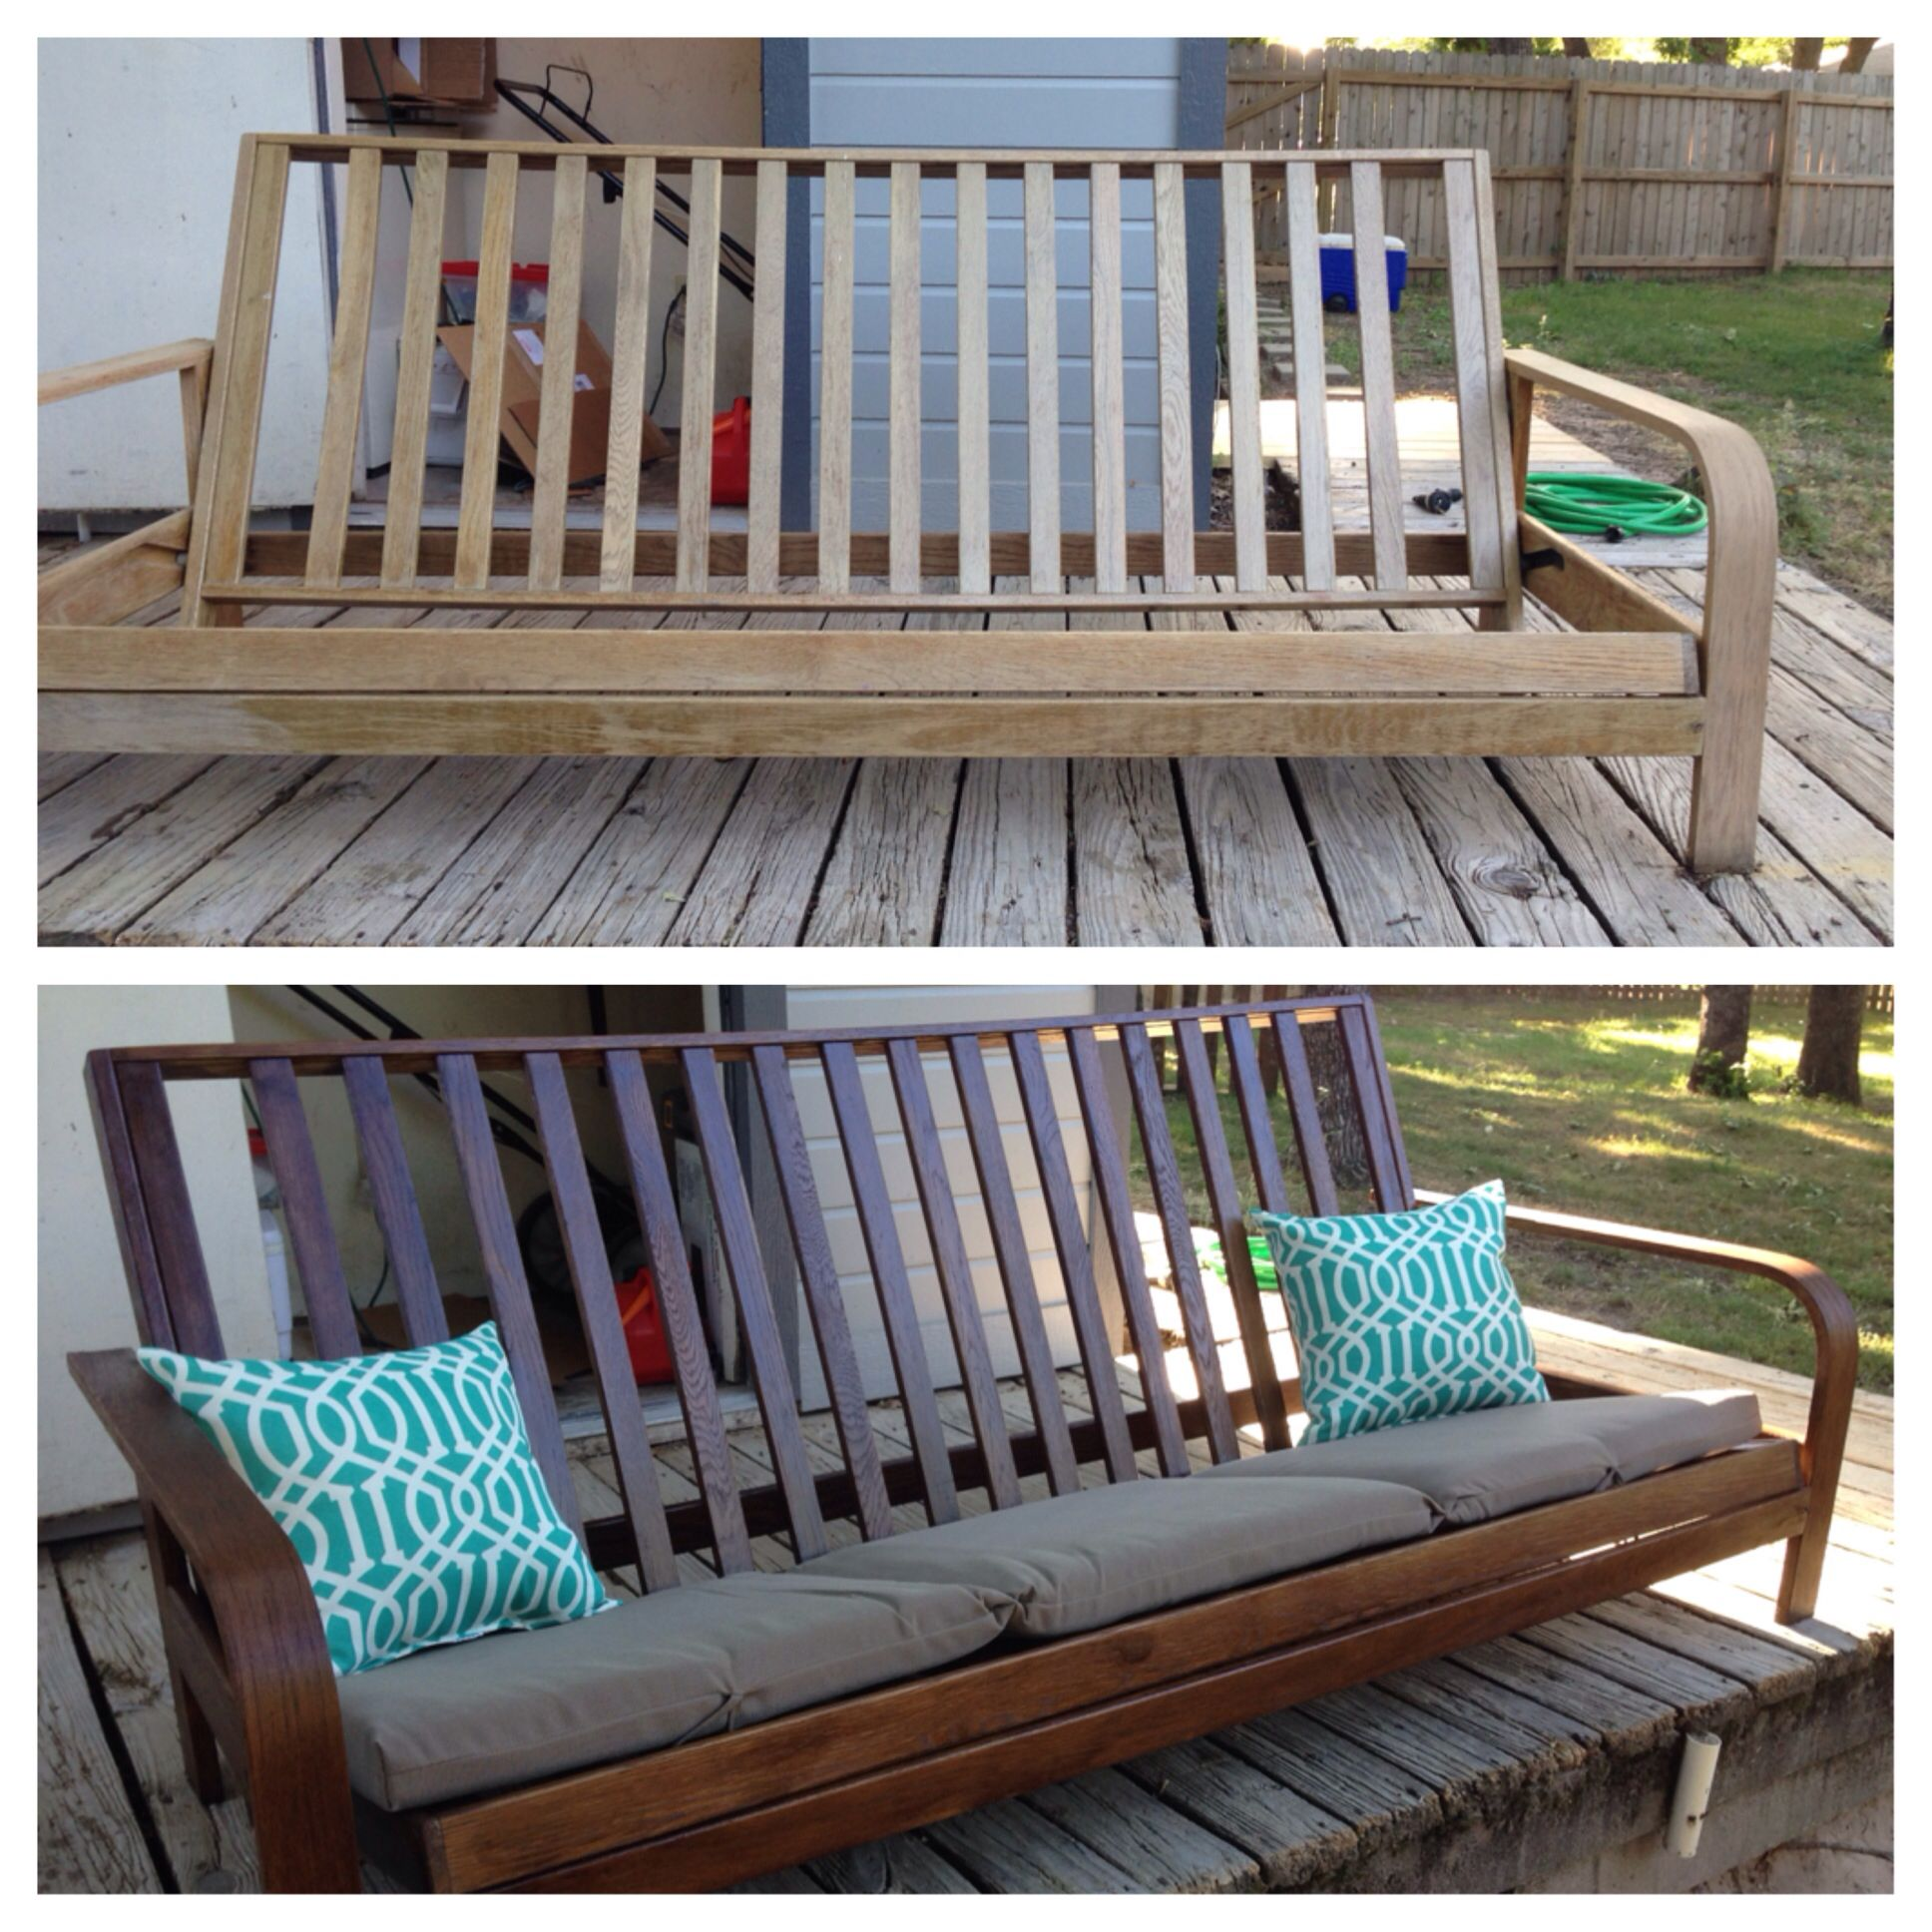 Pin By Carrie Boatwright On For The Home Diy Futon Outdoor Futon Futon Frame